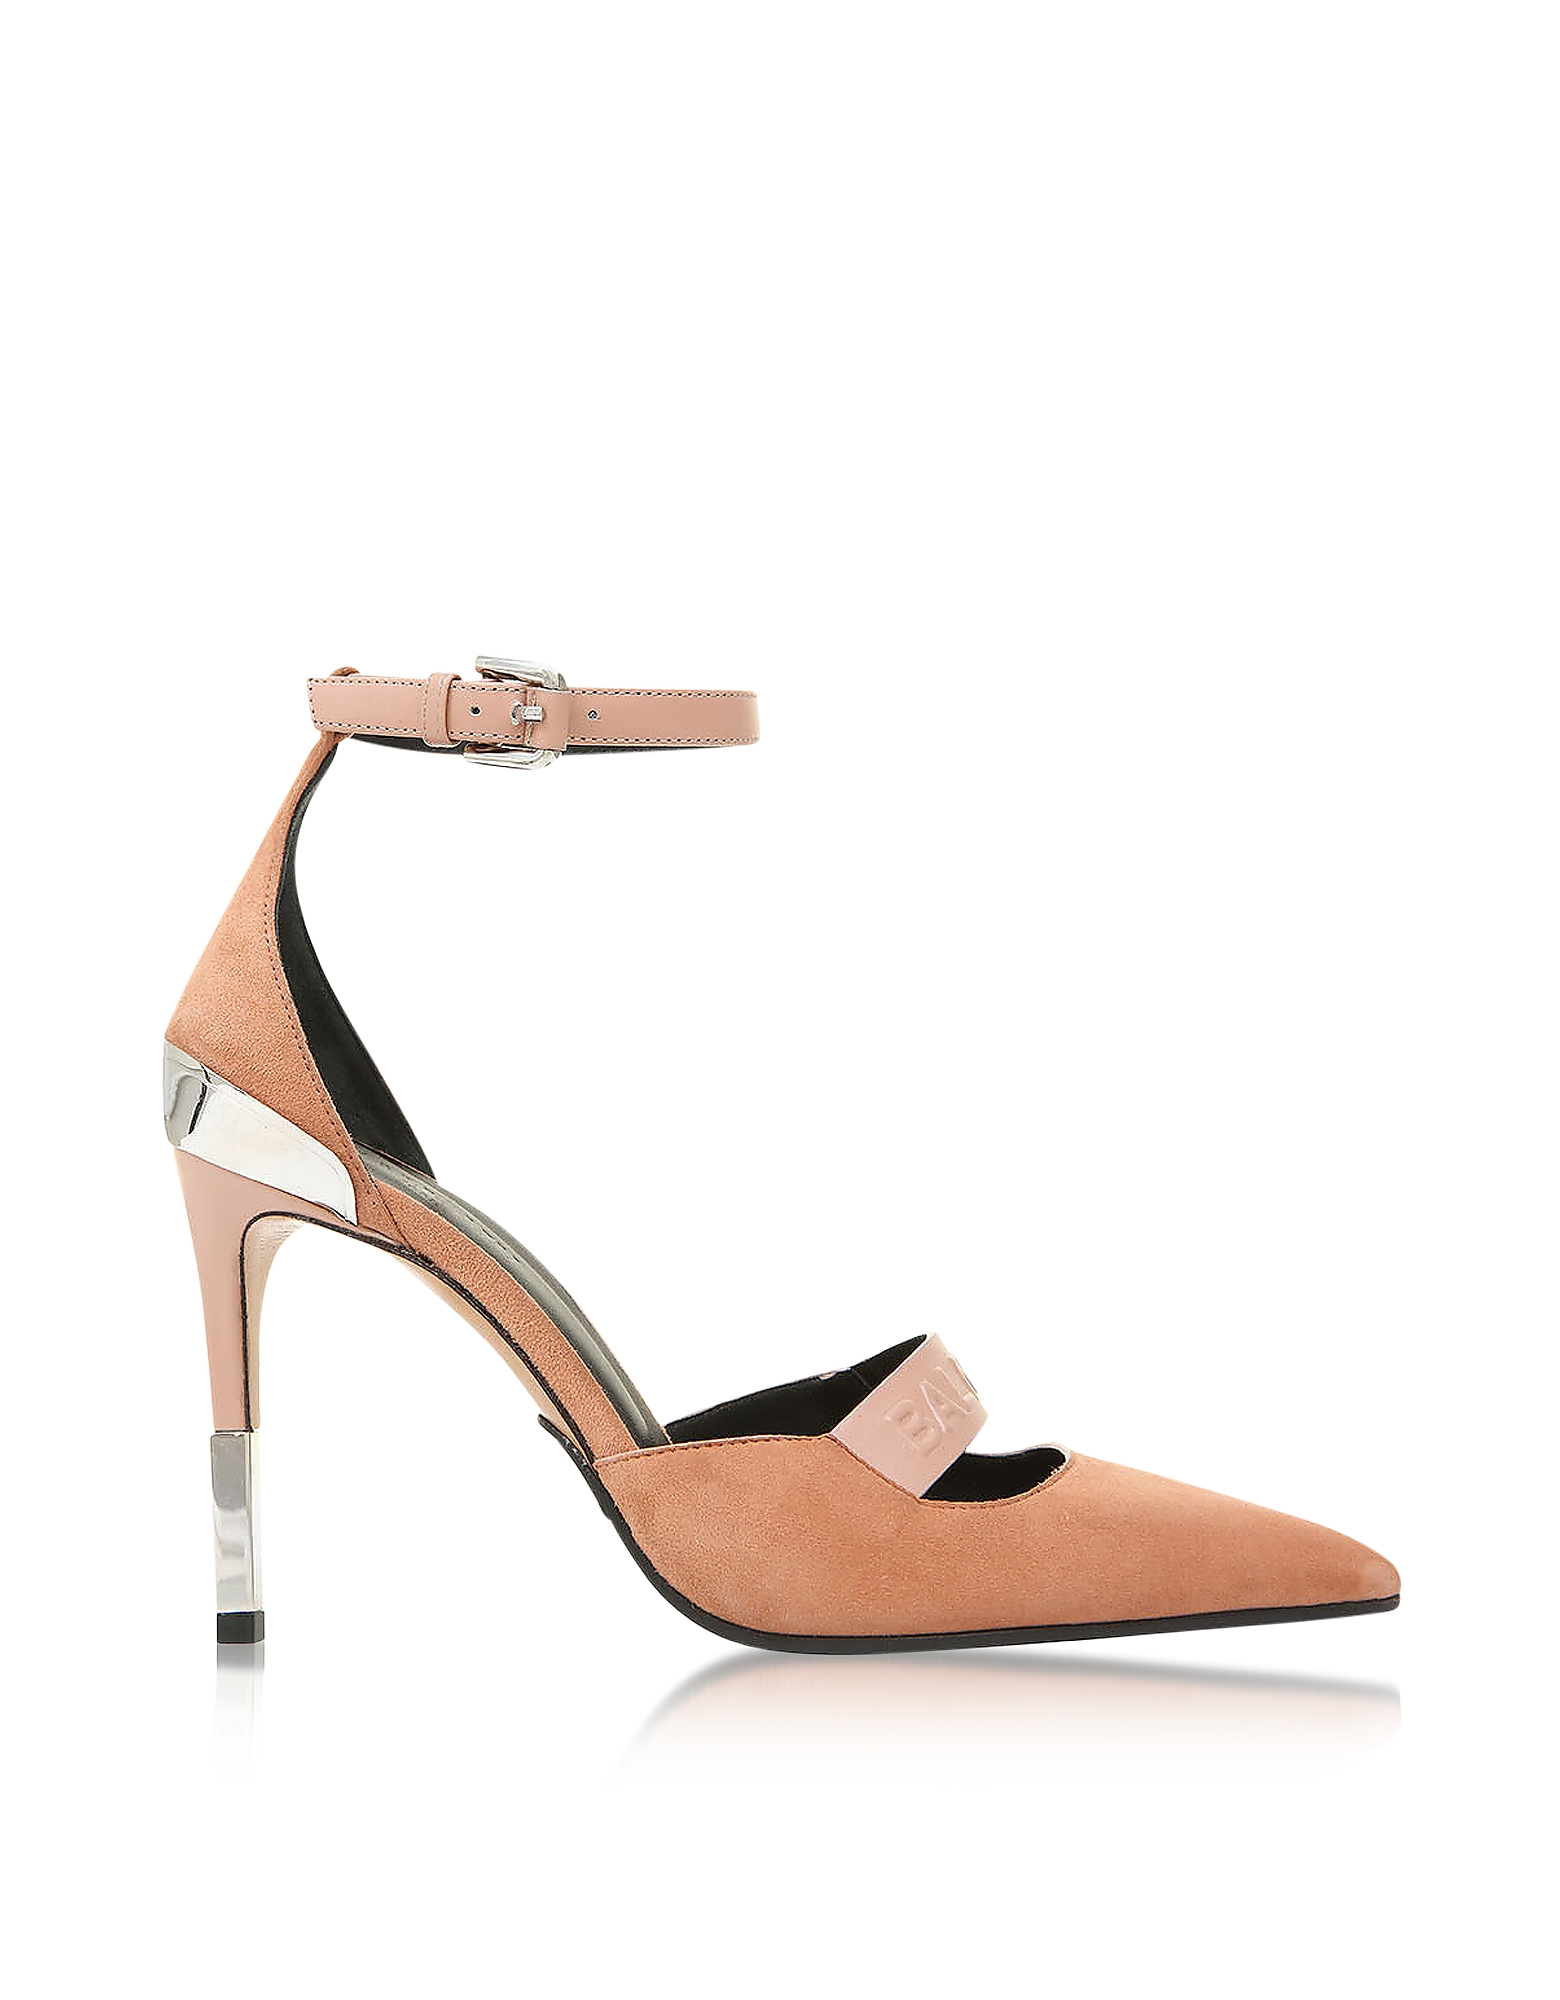 Balmain Shoes, Powder Pink Suede Ankle Wrap Chance Pumps